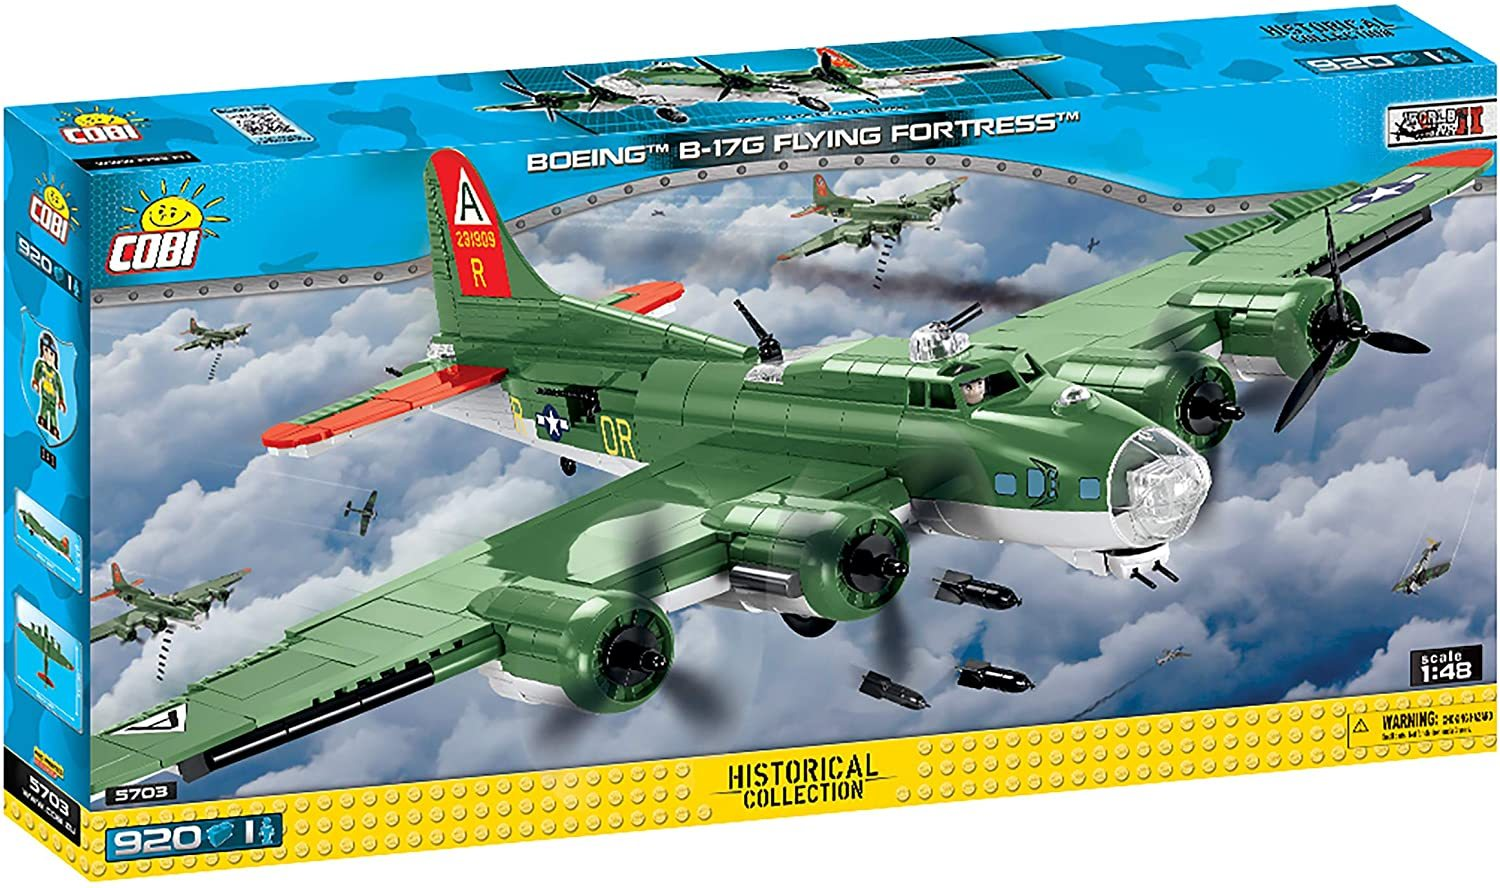 Cobi 5703 Boeing™ B-17G Flying Fortress™ (Historical Collection - WWII - Planes)